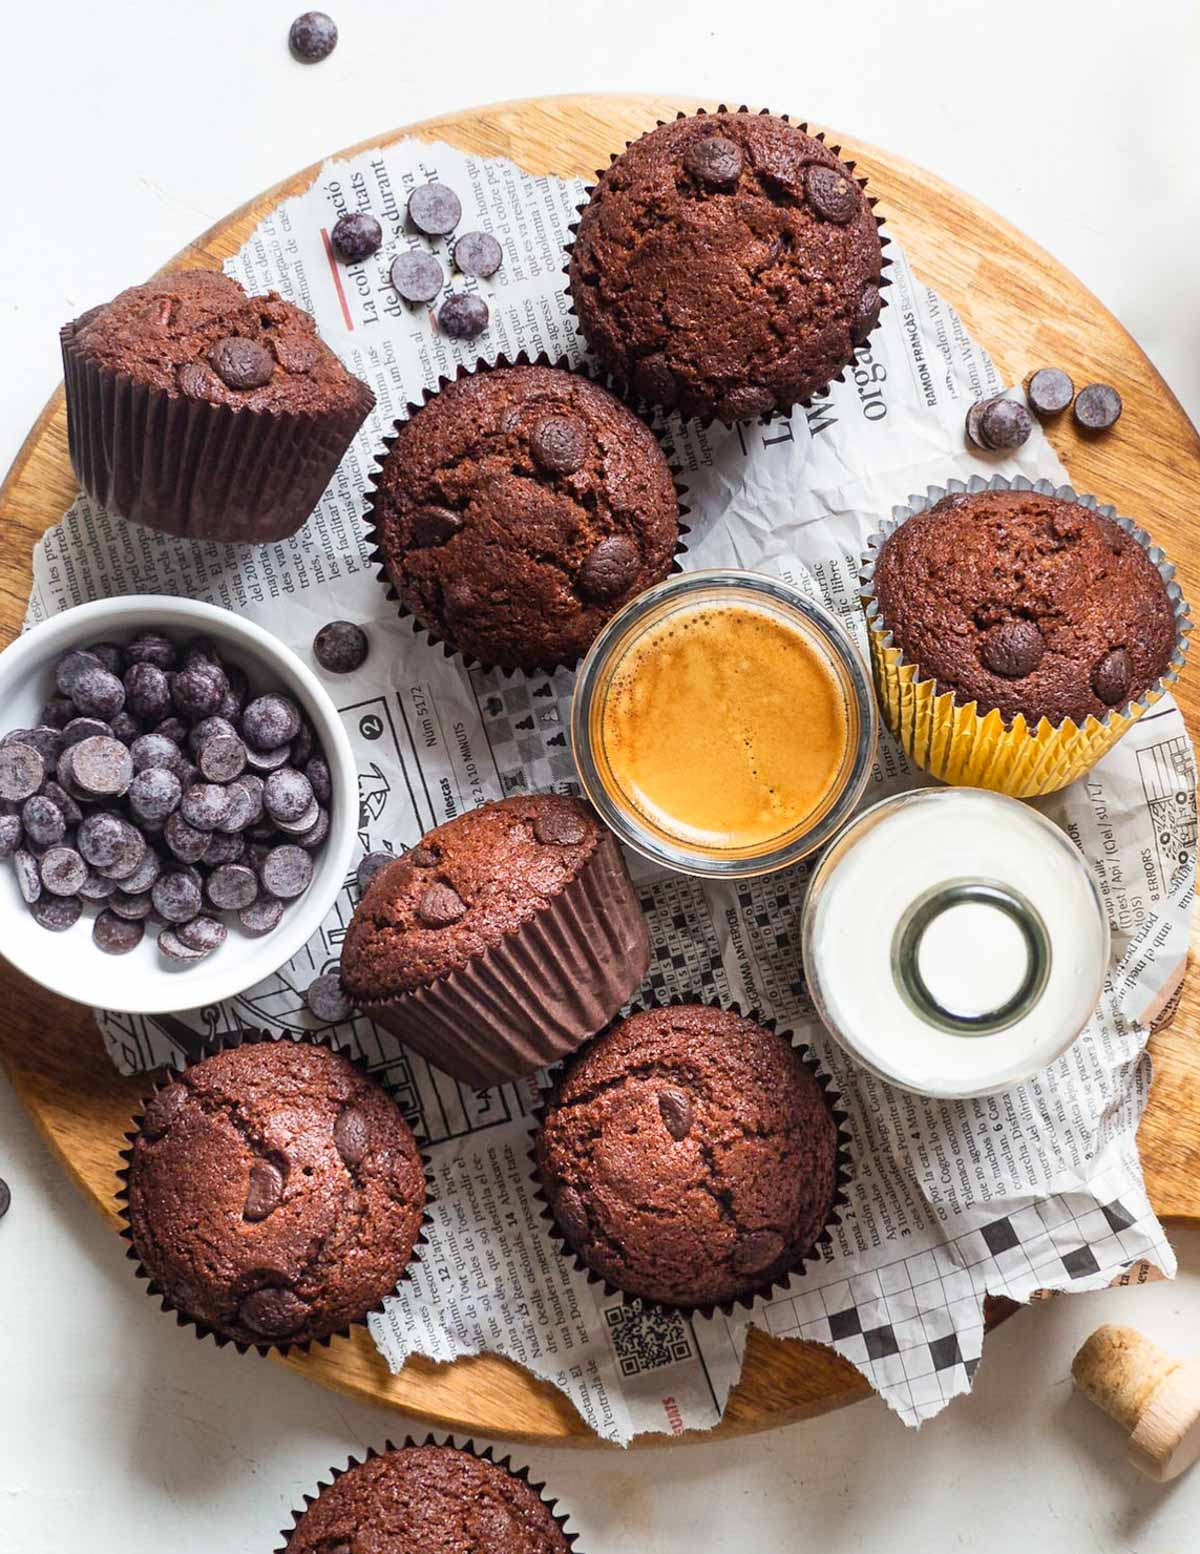 chocolate muffins and a glass of espresso with crema